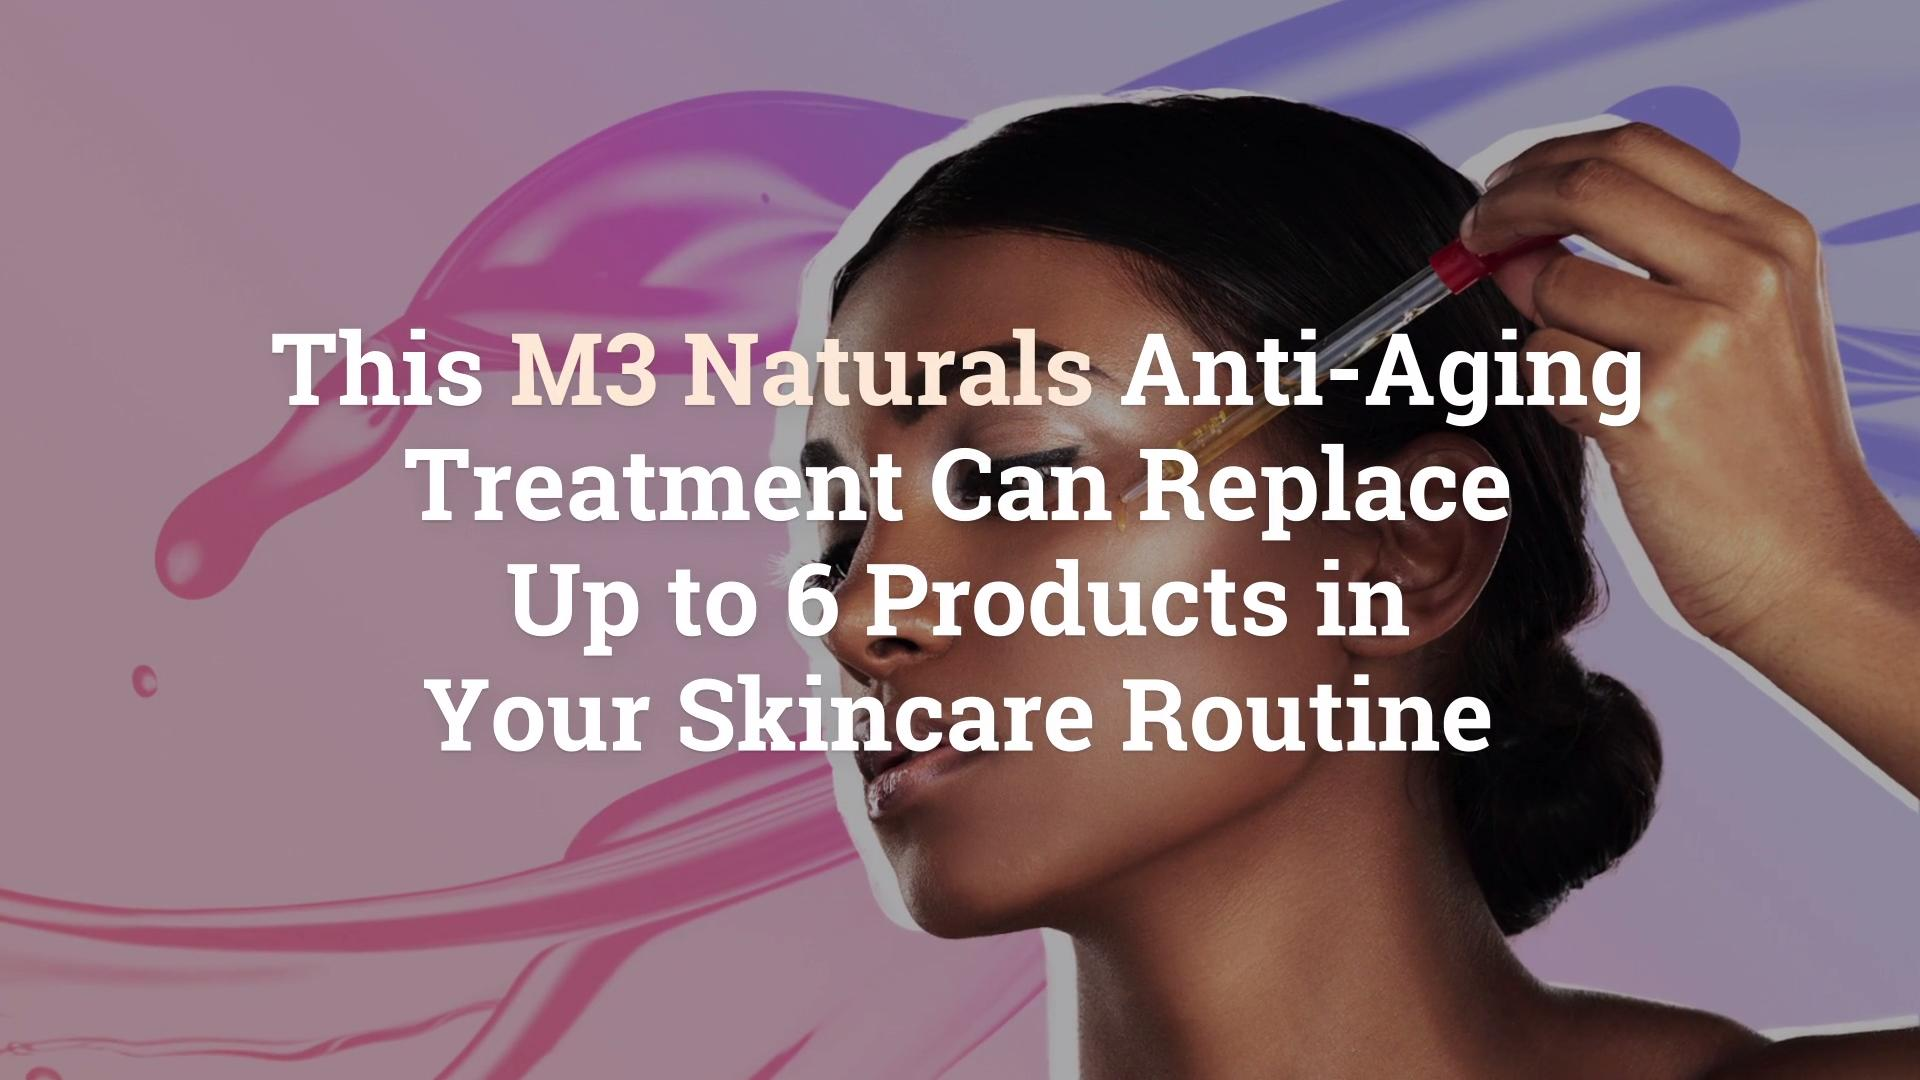 M3 Naturals Professional Peel Replaces Up To 6 Anti Aging Skincare